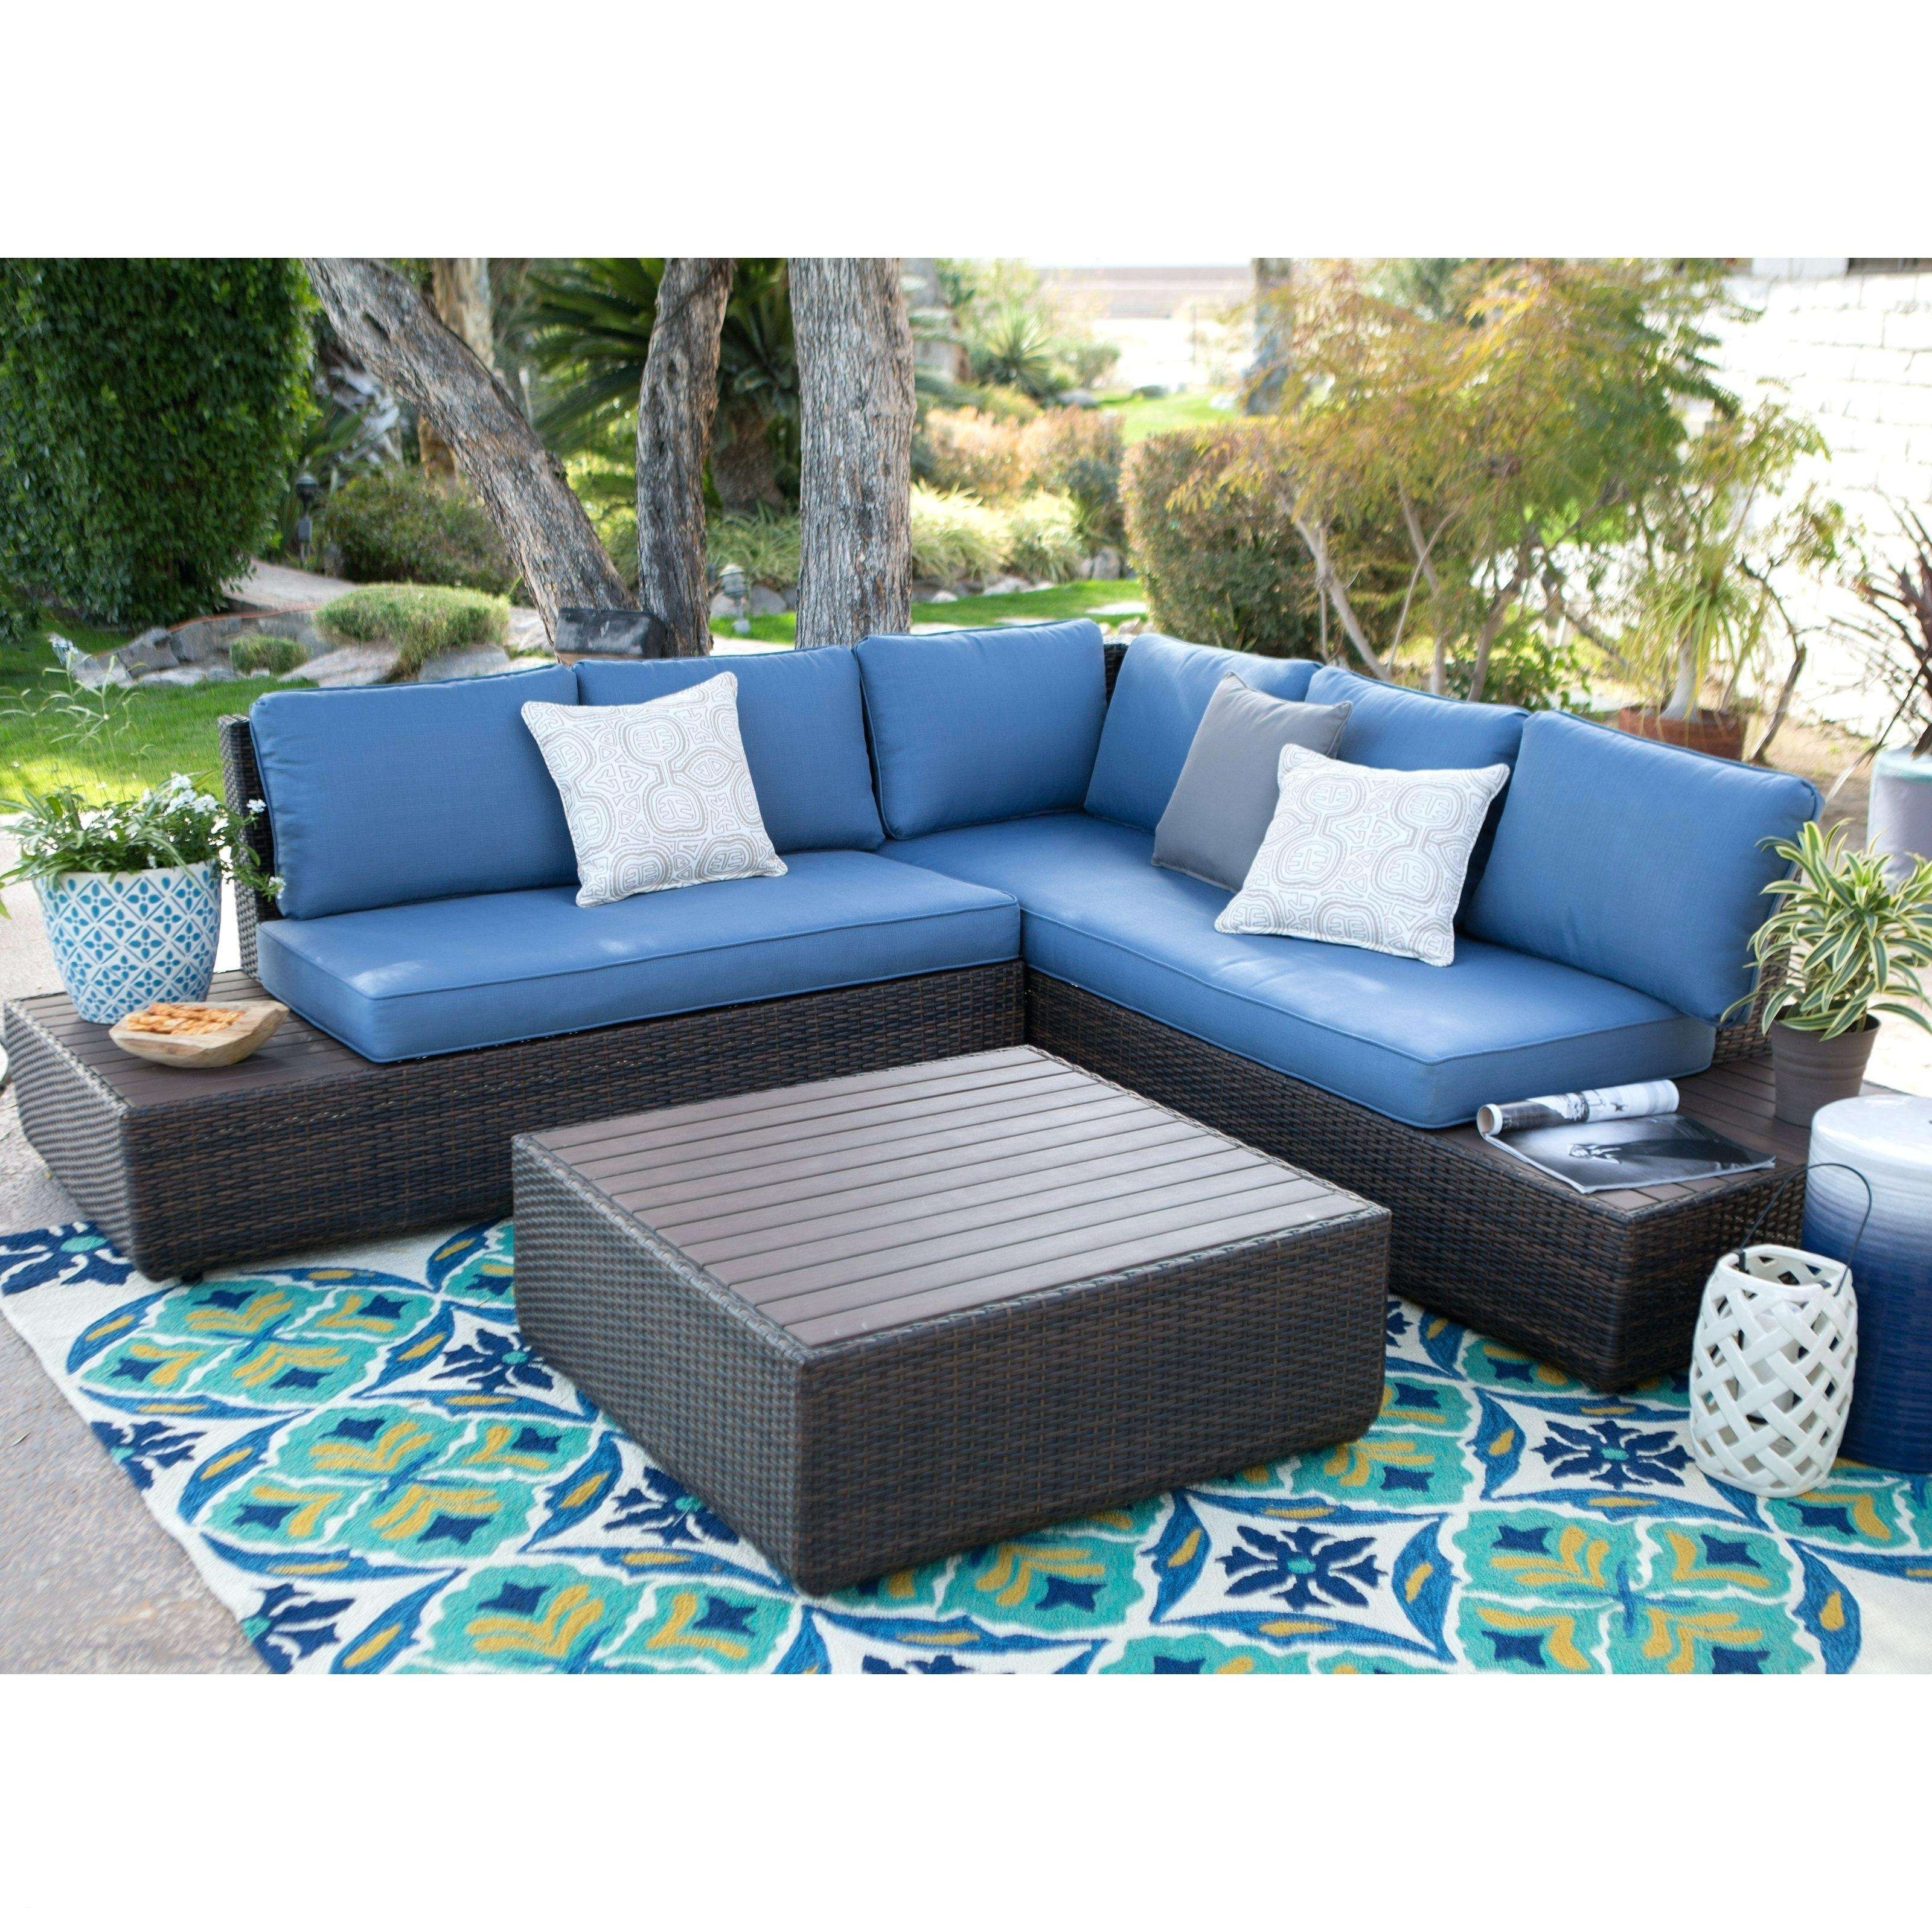 Hampton Bay Replacement Cushions For Outdoor Furniture